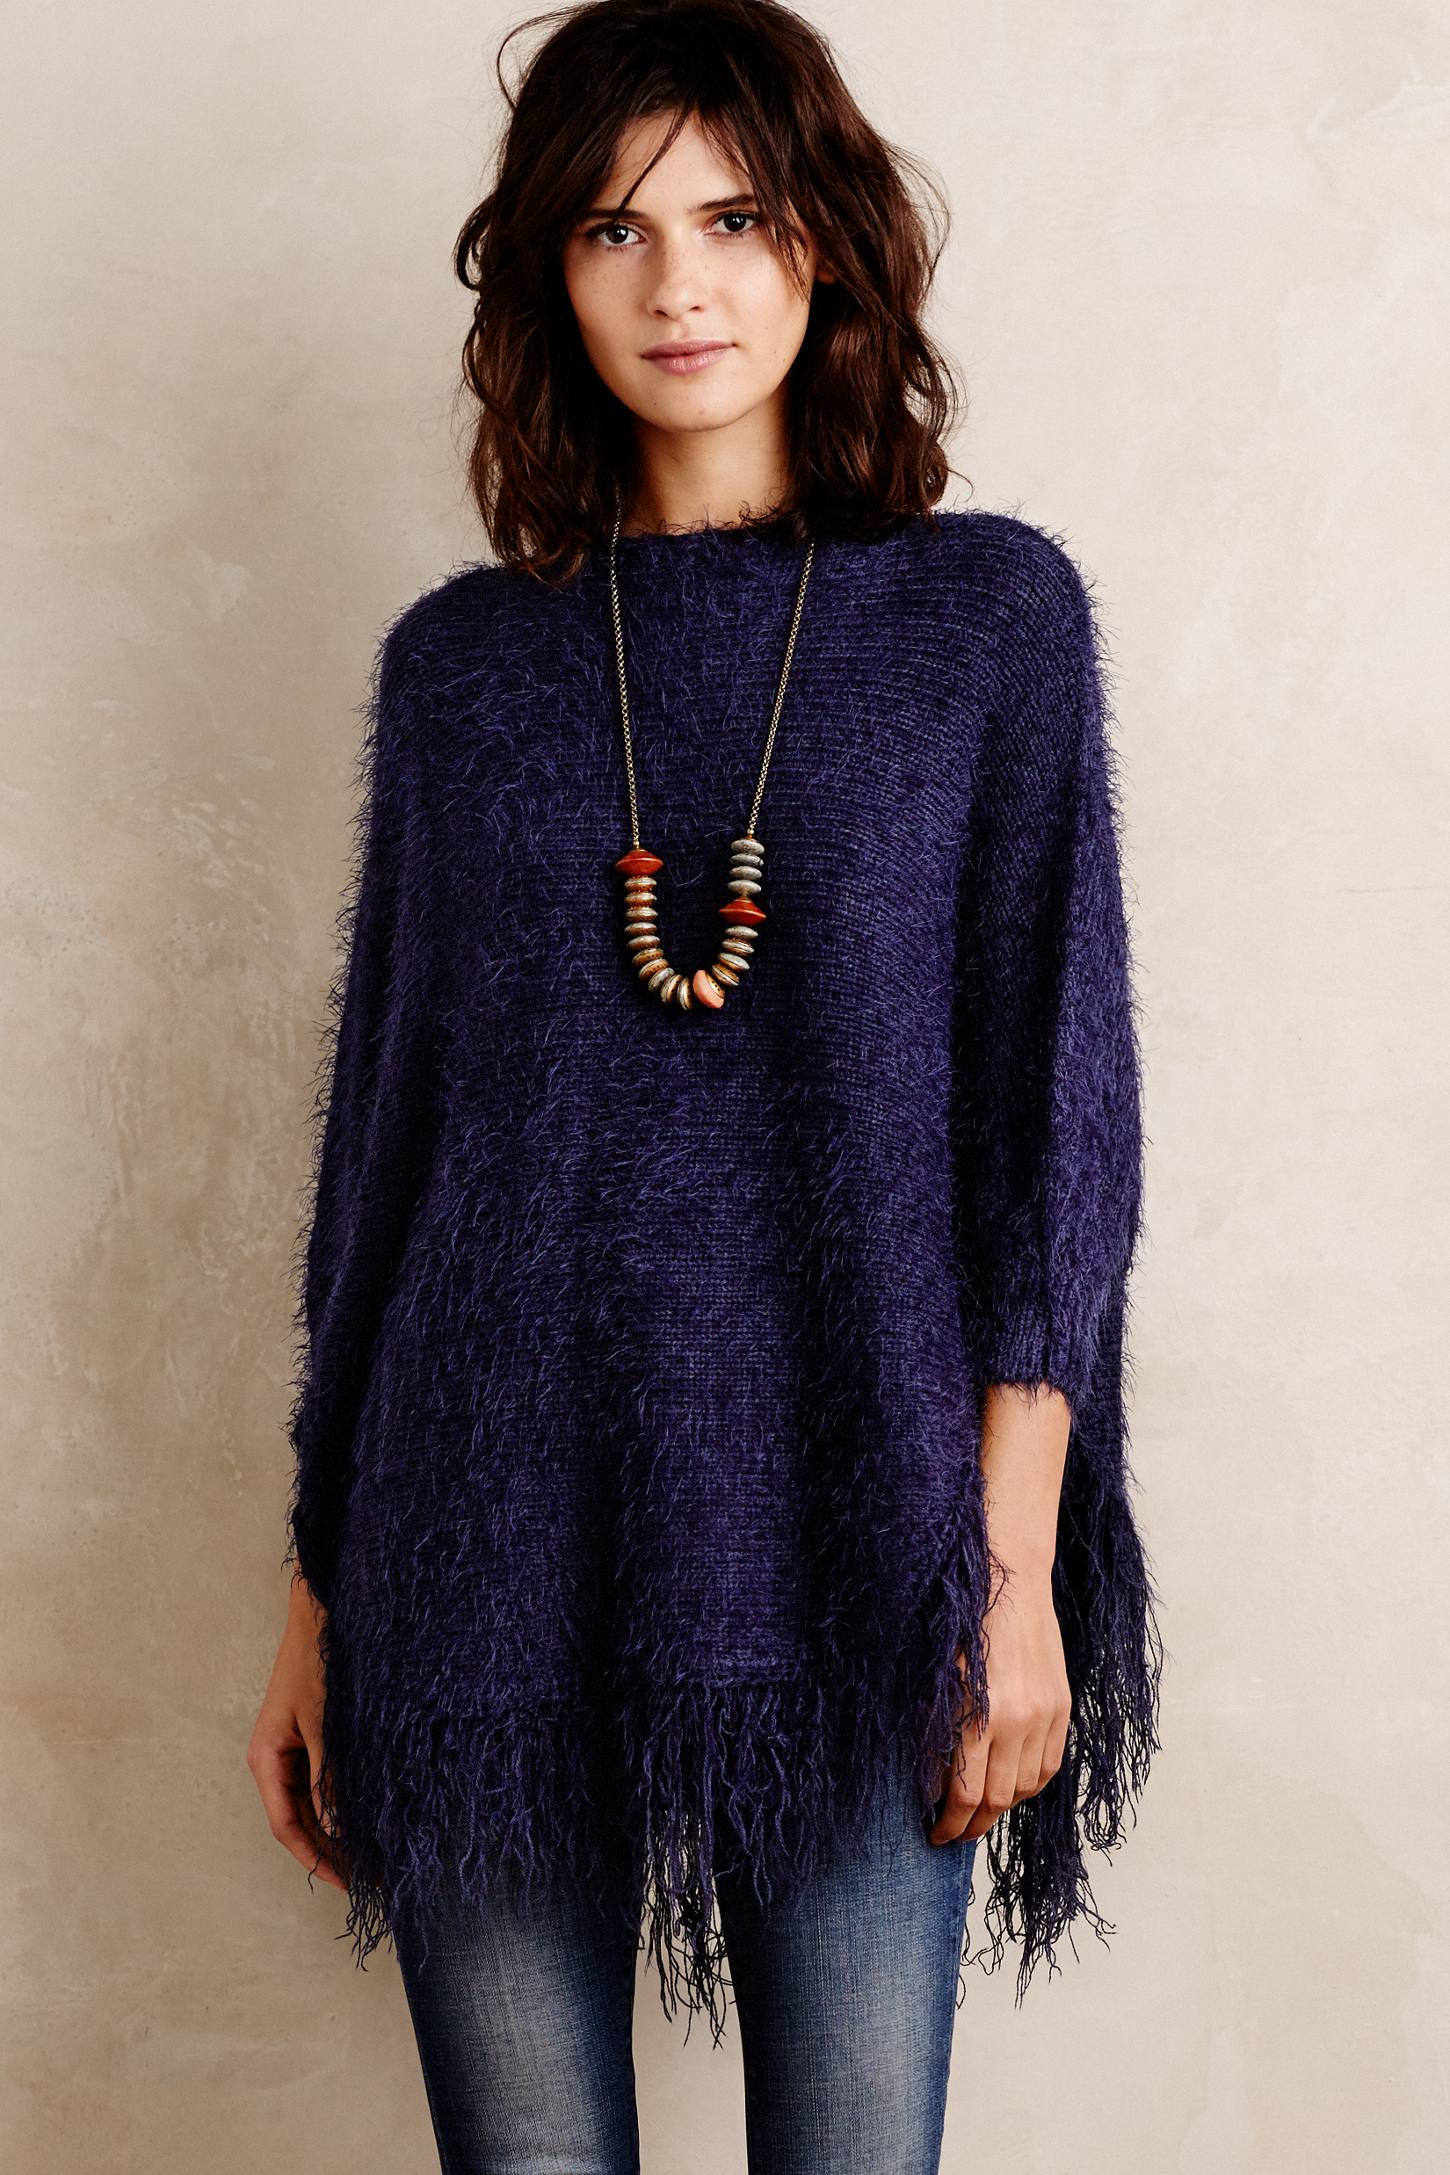 Eyelash Fringe Pullover by La Fee Verte